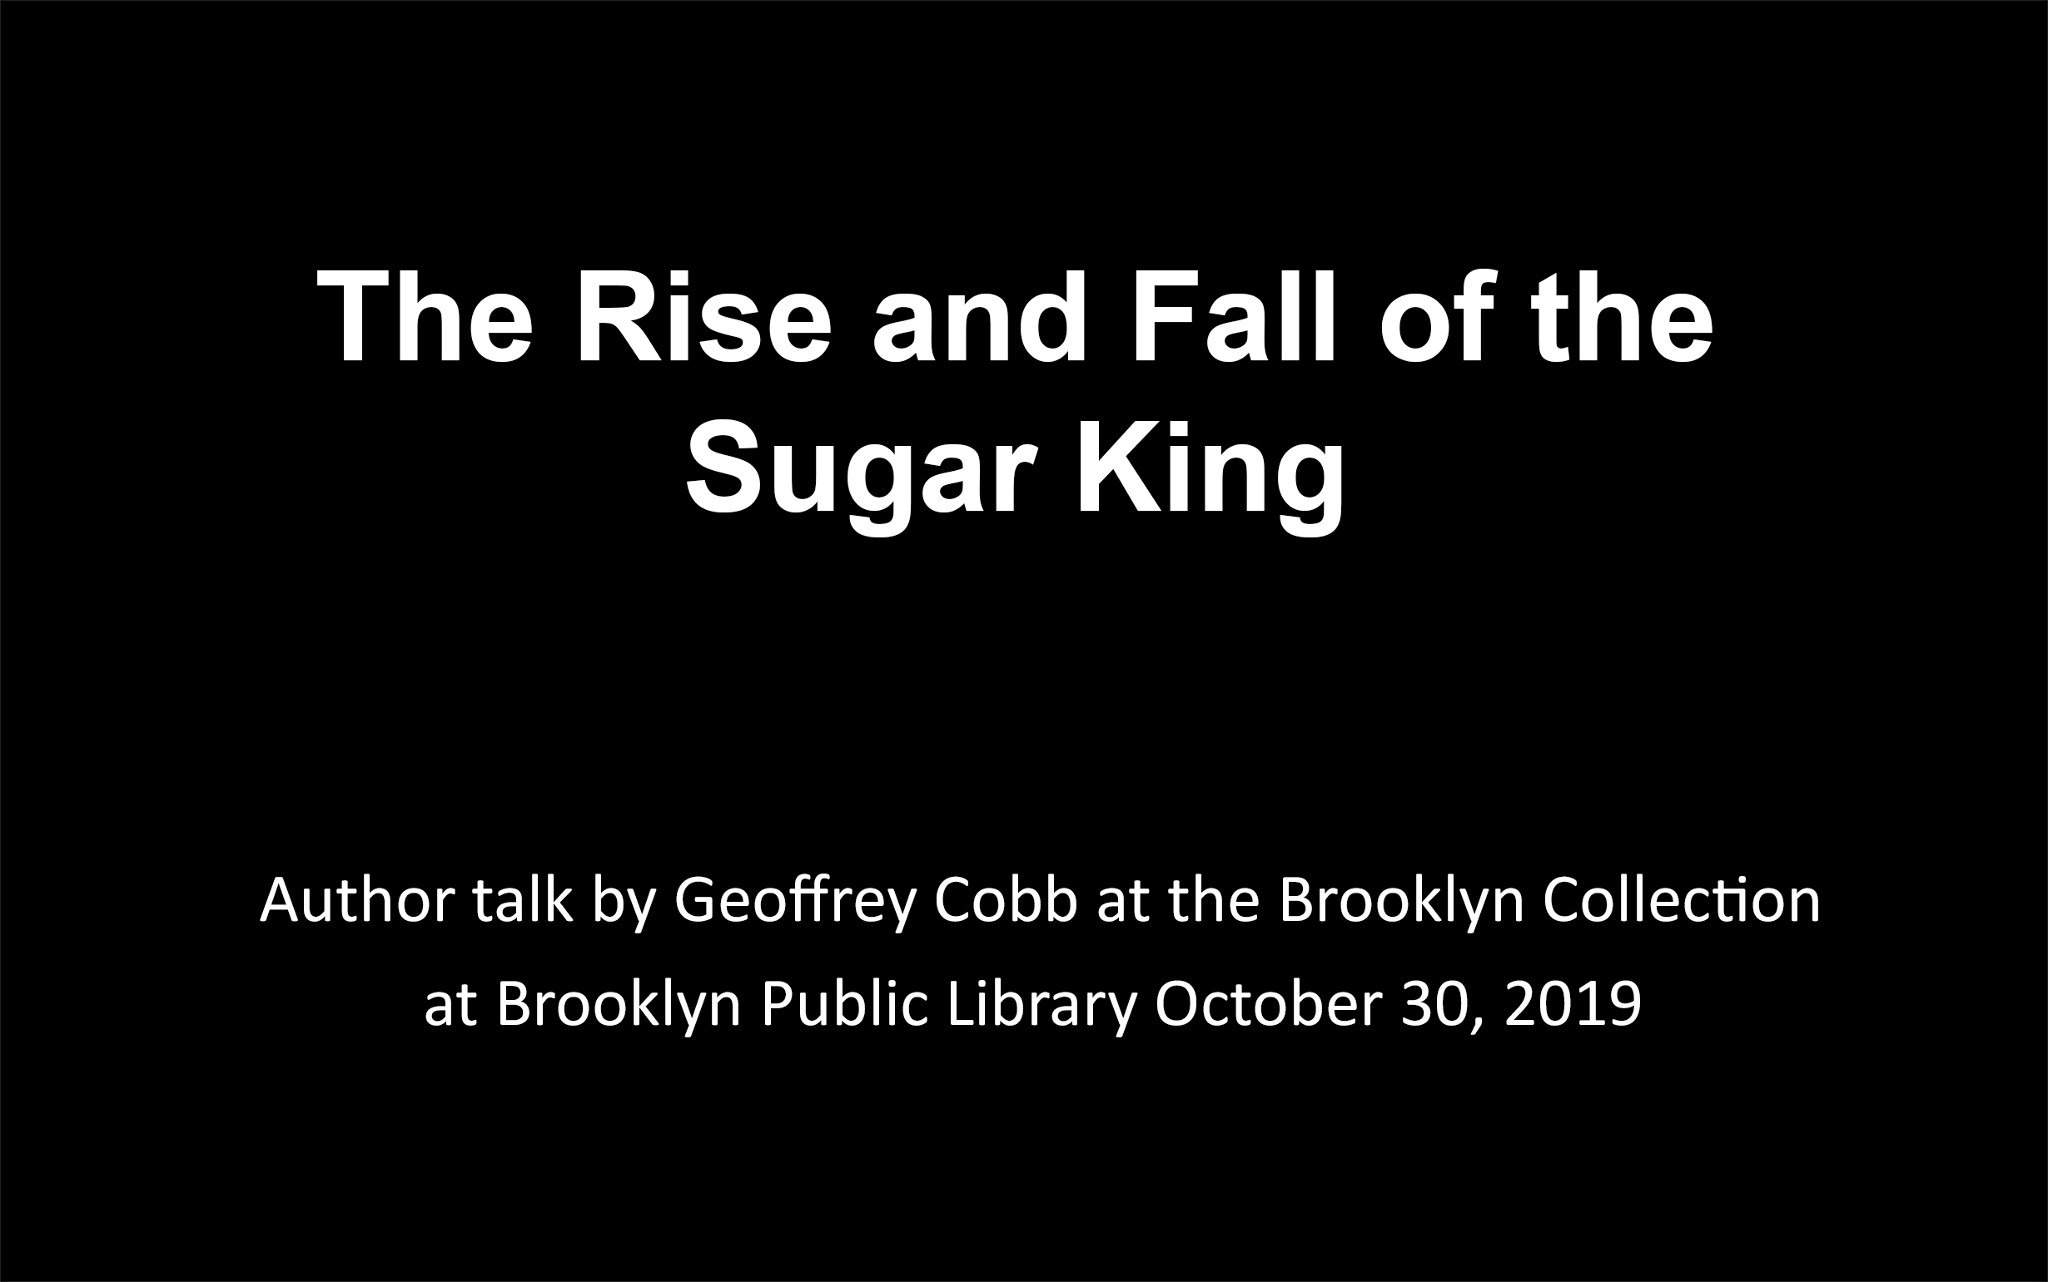 The Rise and Fall of the Sugar King.